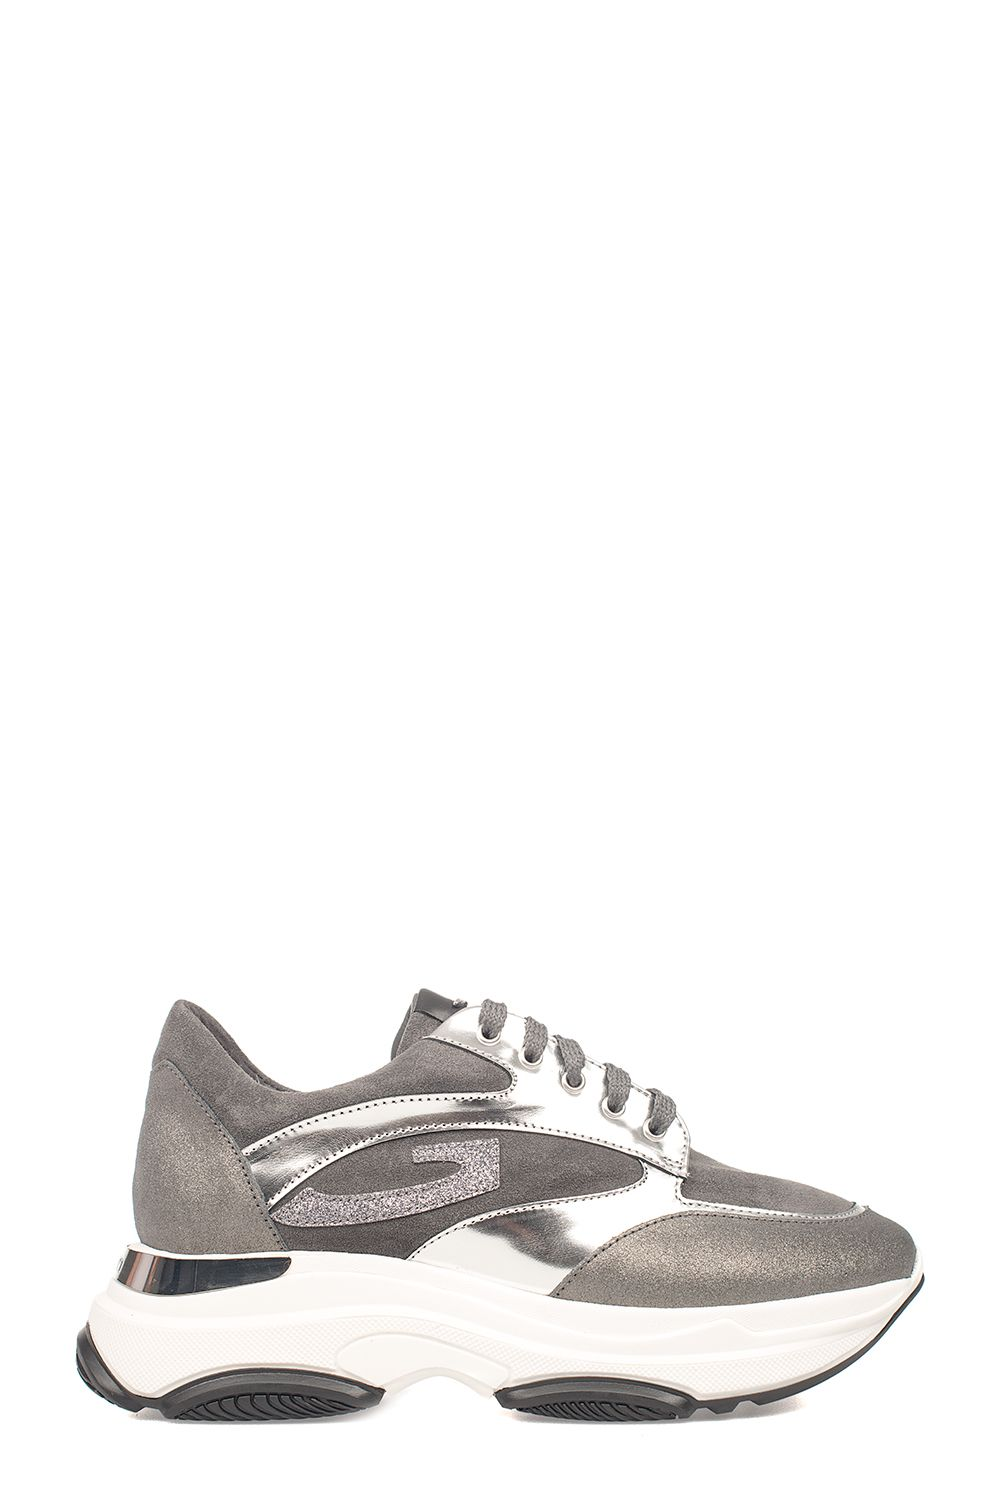 ALBERTO GUARDIANI Gray Suede Sport Lady Vague Sneakers